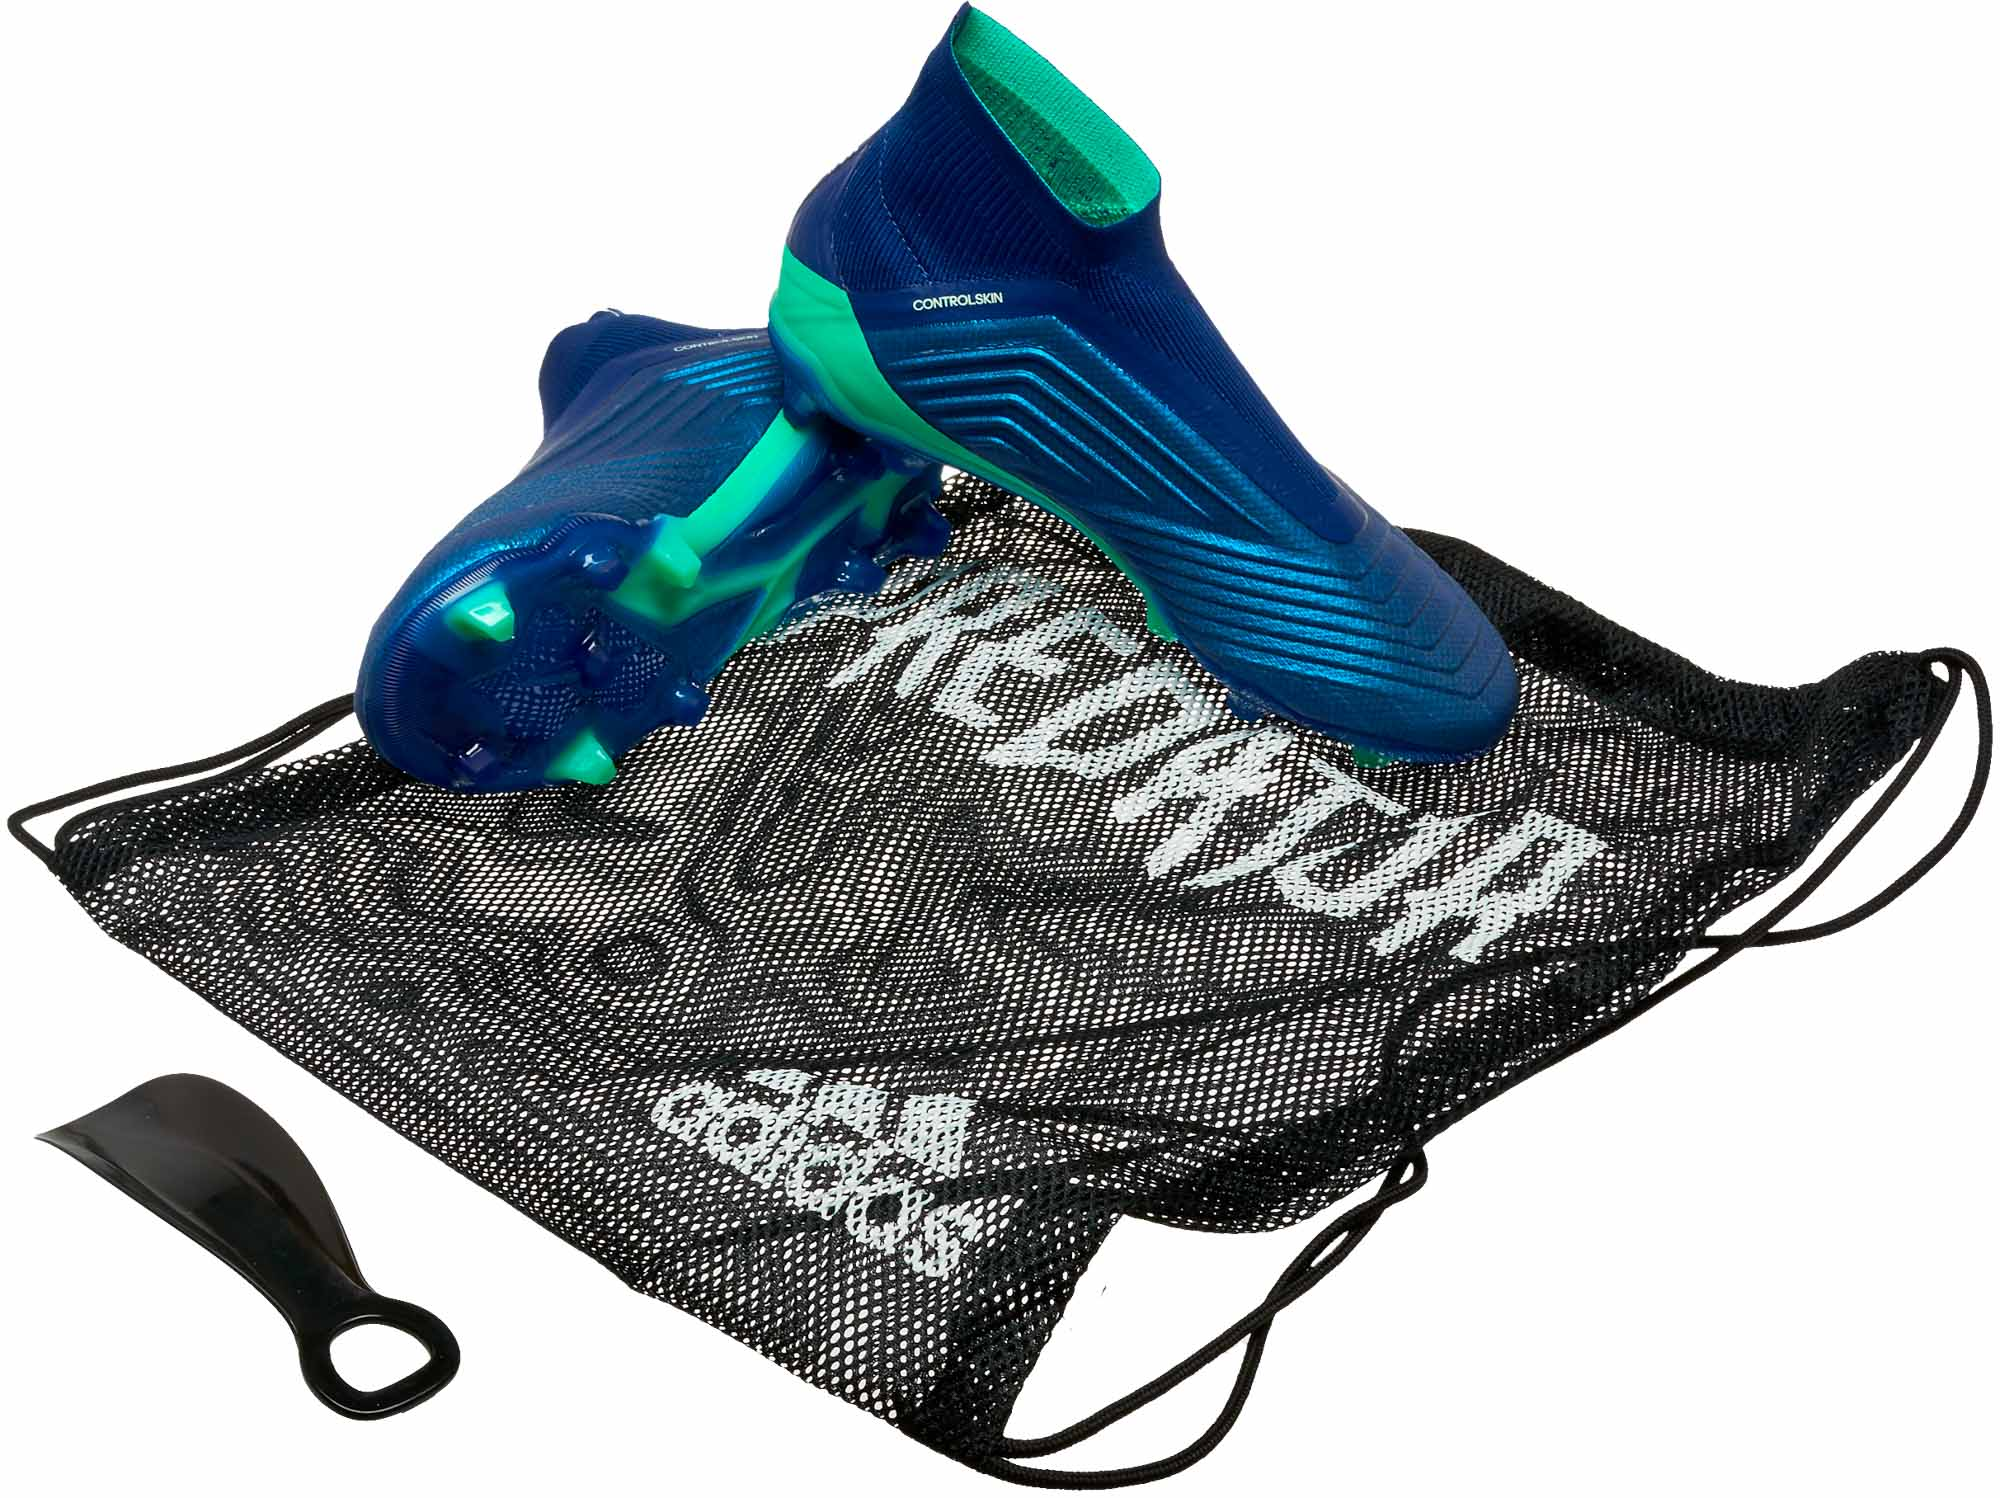 adidas cohesion case Adidas is a german multinational corporation, headquartered in herzogenaurach, bavaria, that designs and manufactures shoes, clothing and accessories the brand was founded by adolf dassler in 1924.